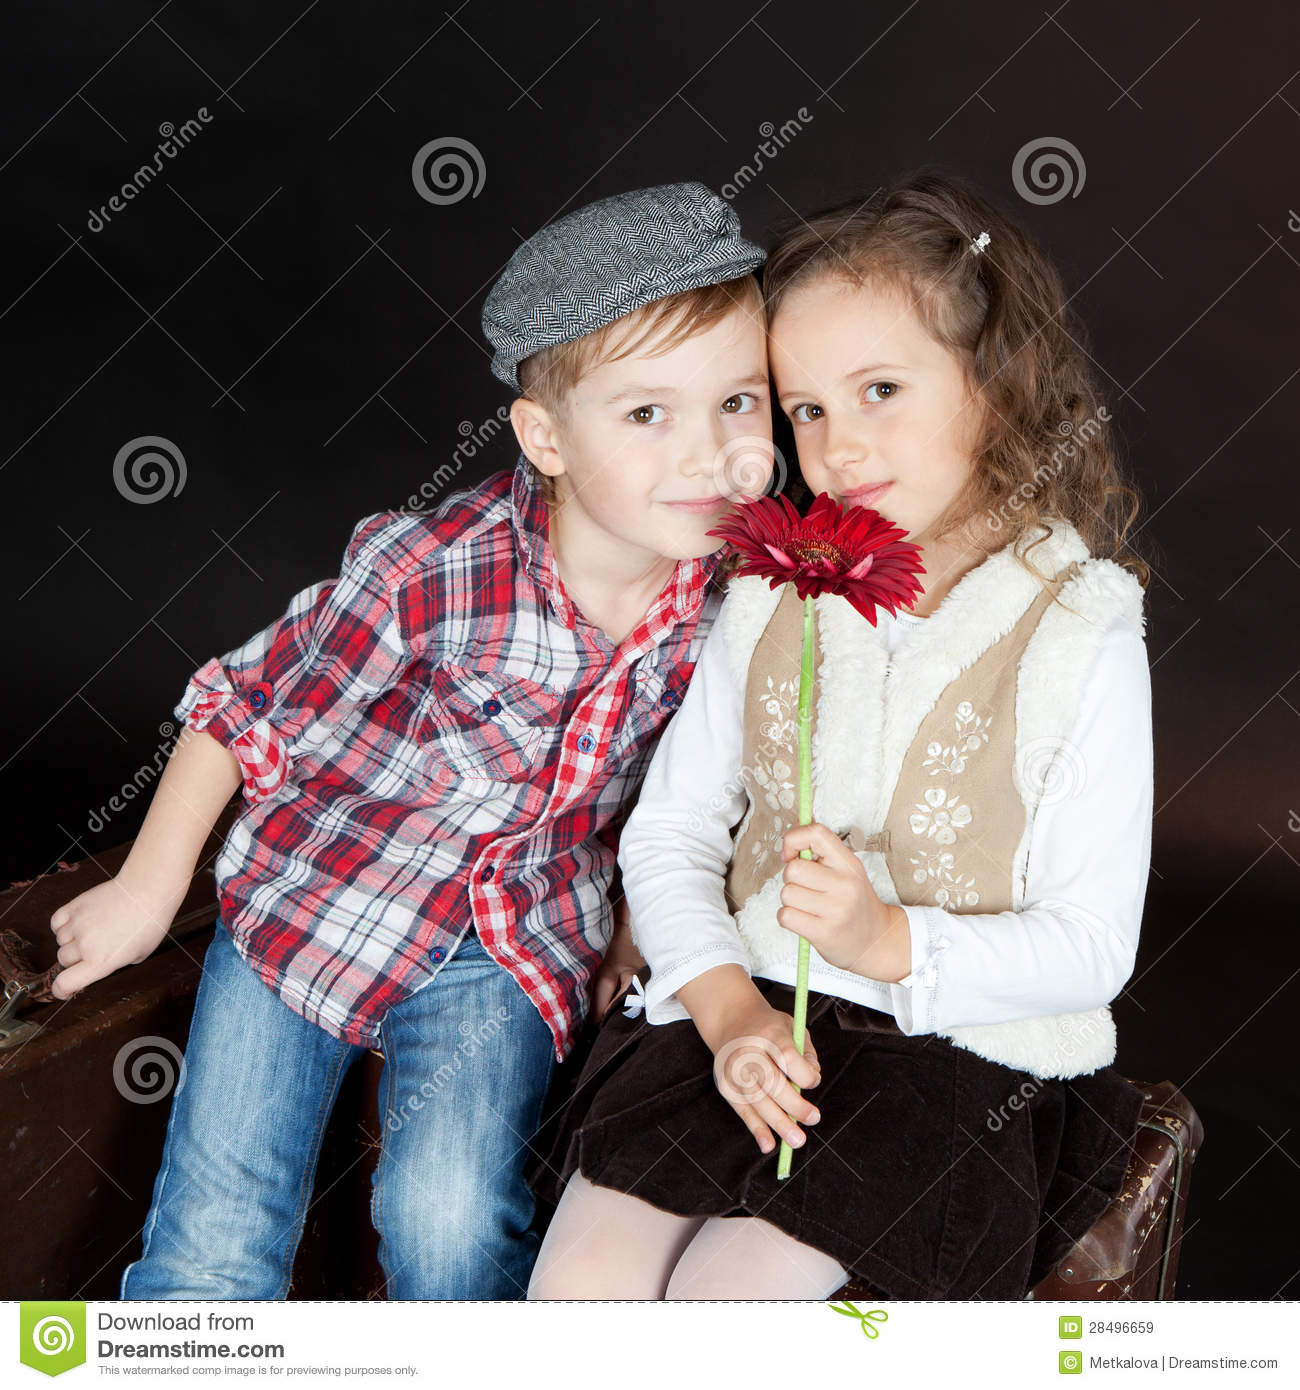 Little Girl And Boy Love Wallpaper : Funny Little couple In Love Royalty Free Stock Images - Image: 28496659